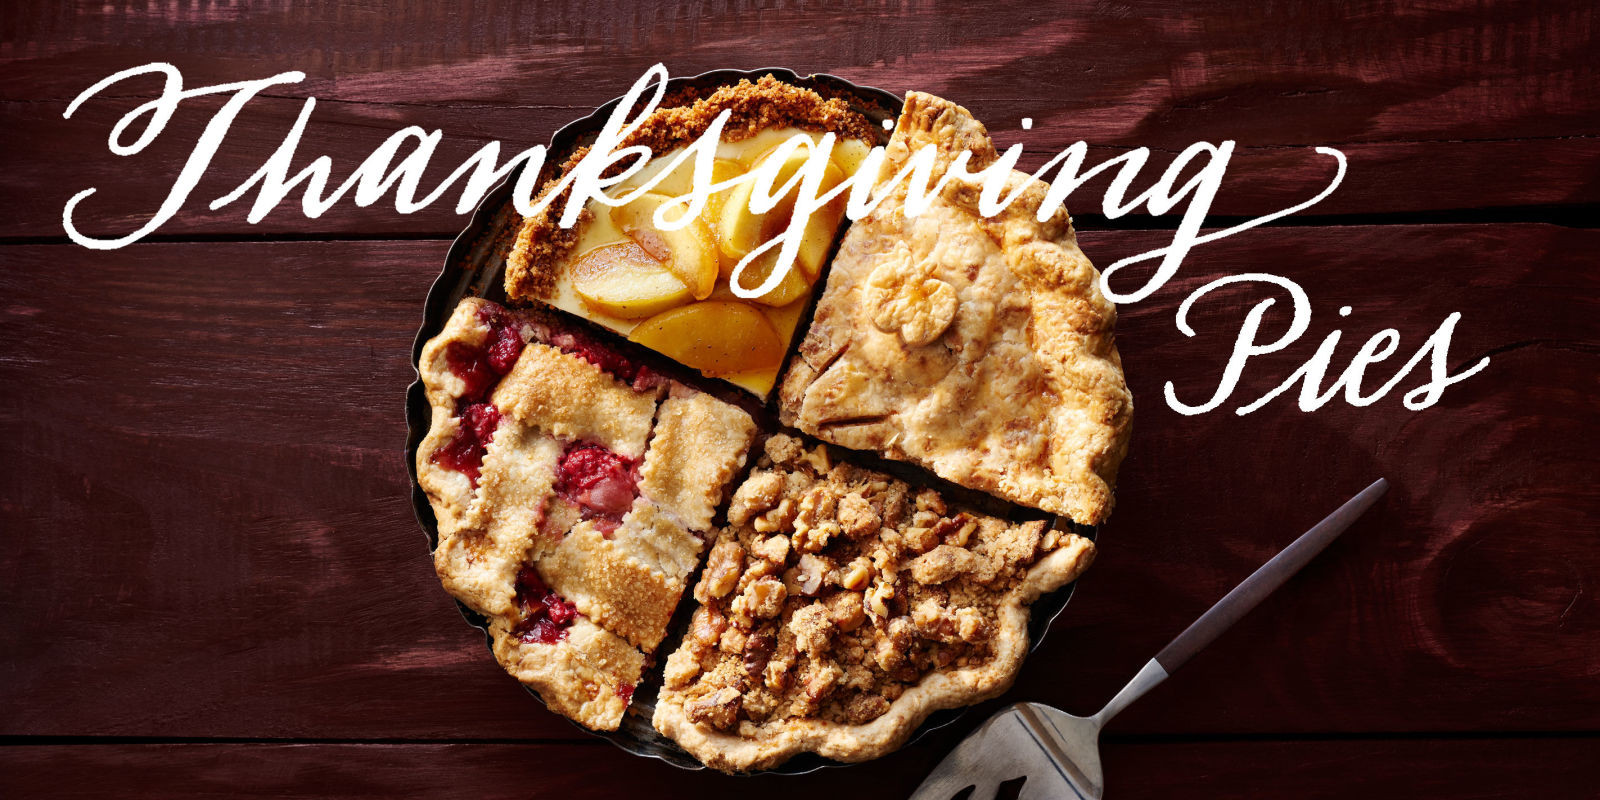 Best Pies For Thanksgiving  38 Best Thanksgiving Pies Recipes and Ideas for